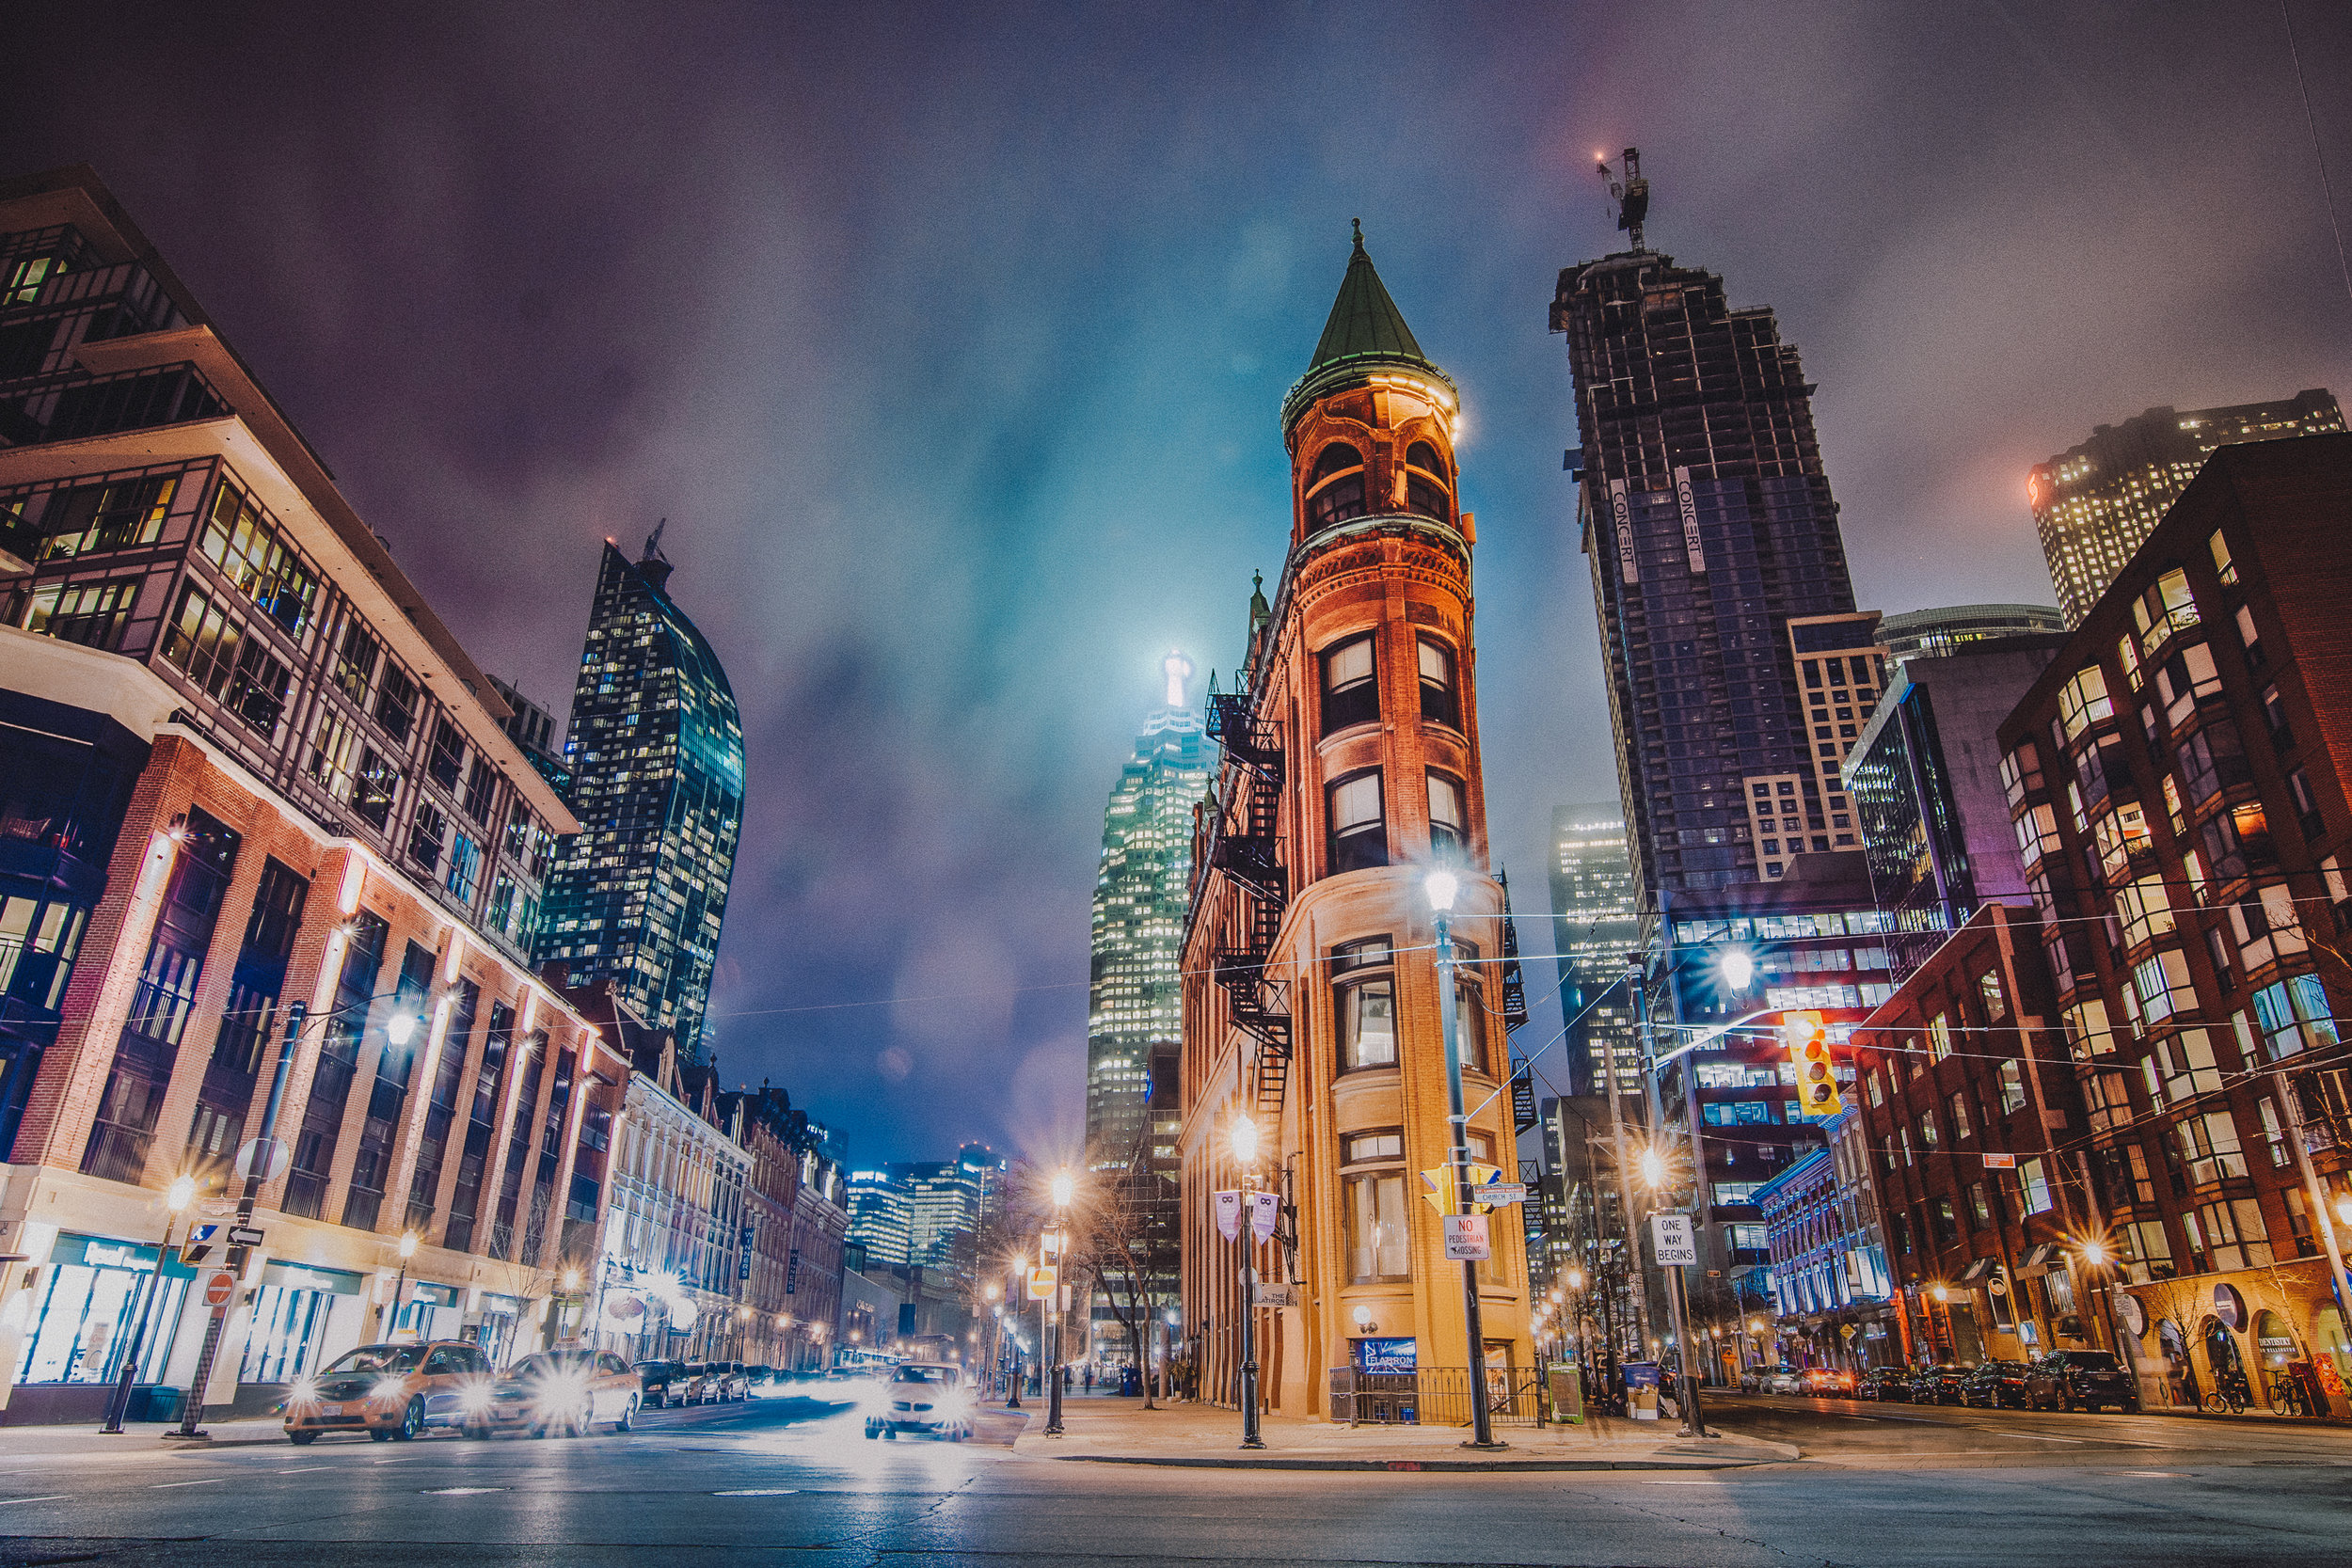 On my way home, I took the long way and walked across Front Street to stop at the iconic & historic Gooderham Building, as known as Toronto's flation building. Pretty fitting seeing as how the Distillery District was the old Gooderham & Worts Limited brewers and this building served as the main offices for the company until the '50s.